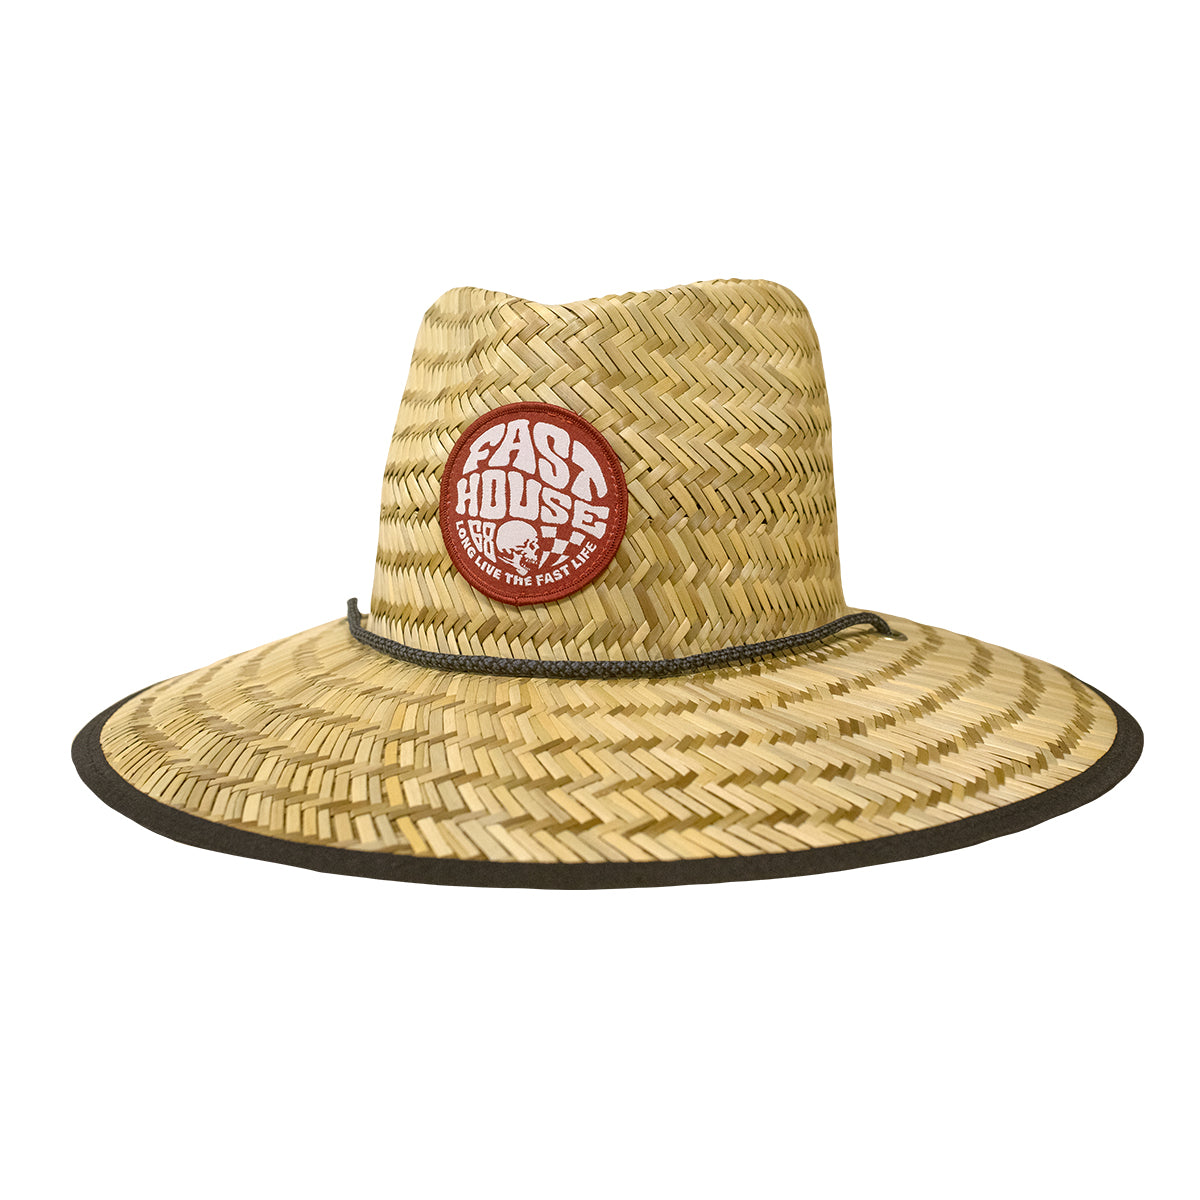 Fasthouse - Barrel Hat - Natural